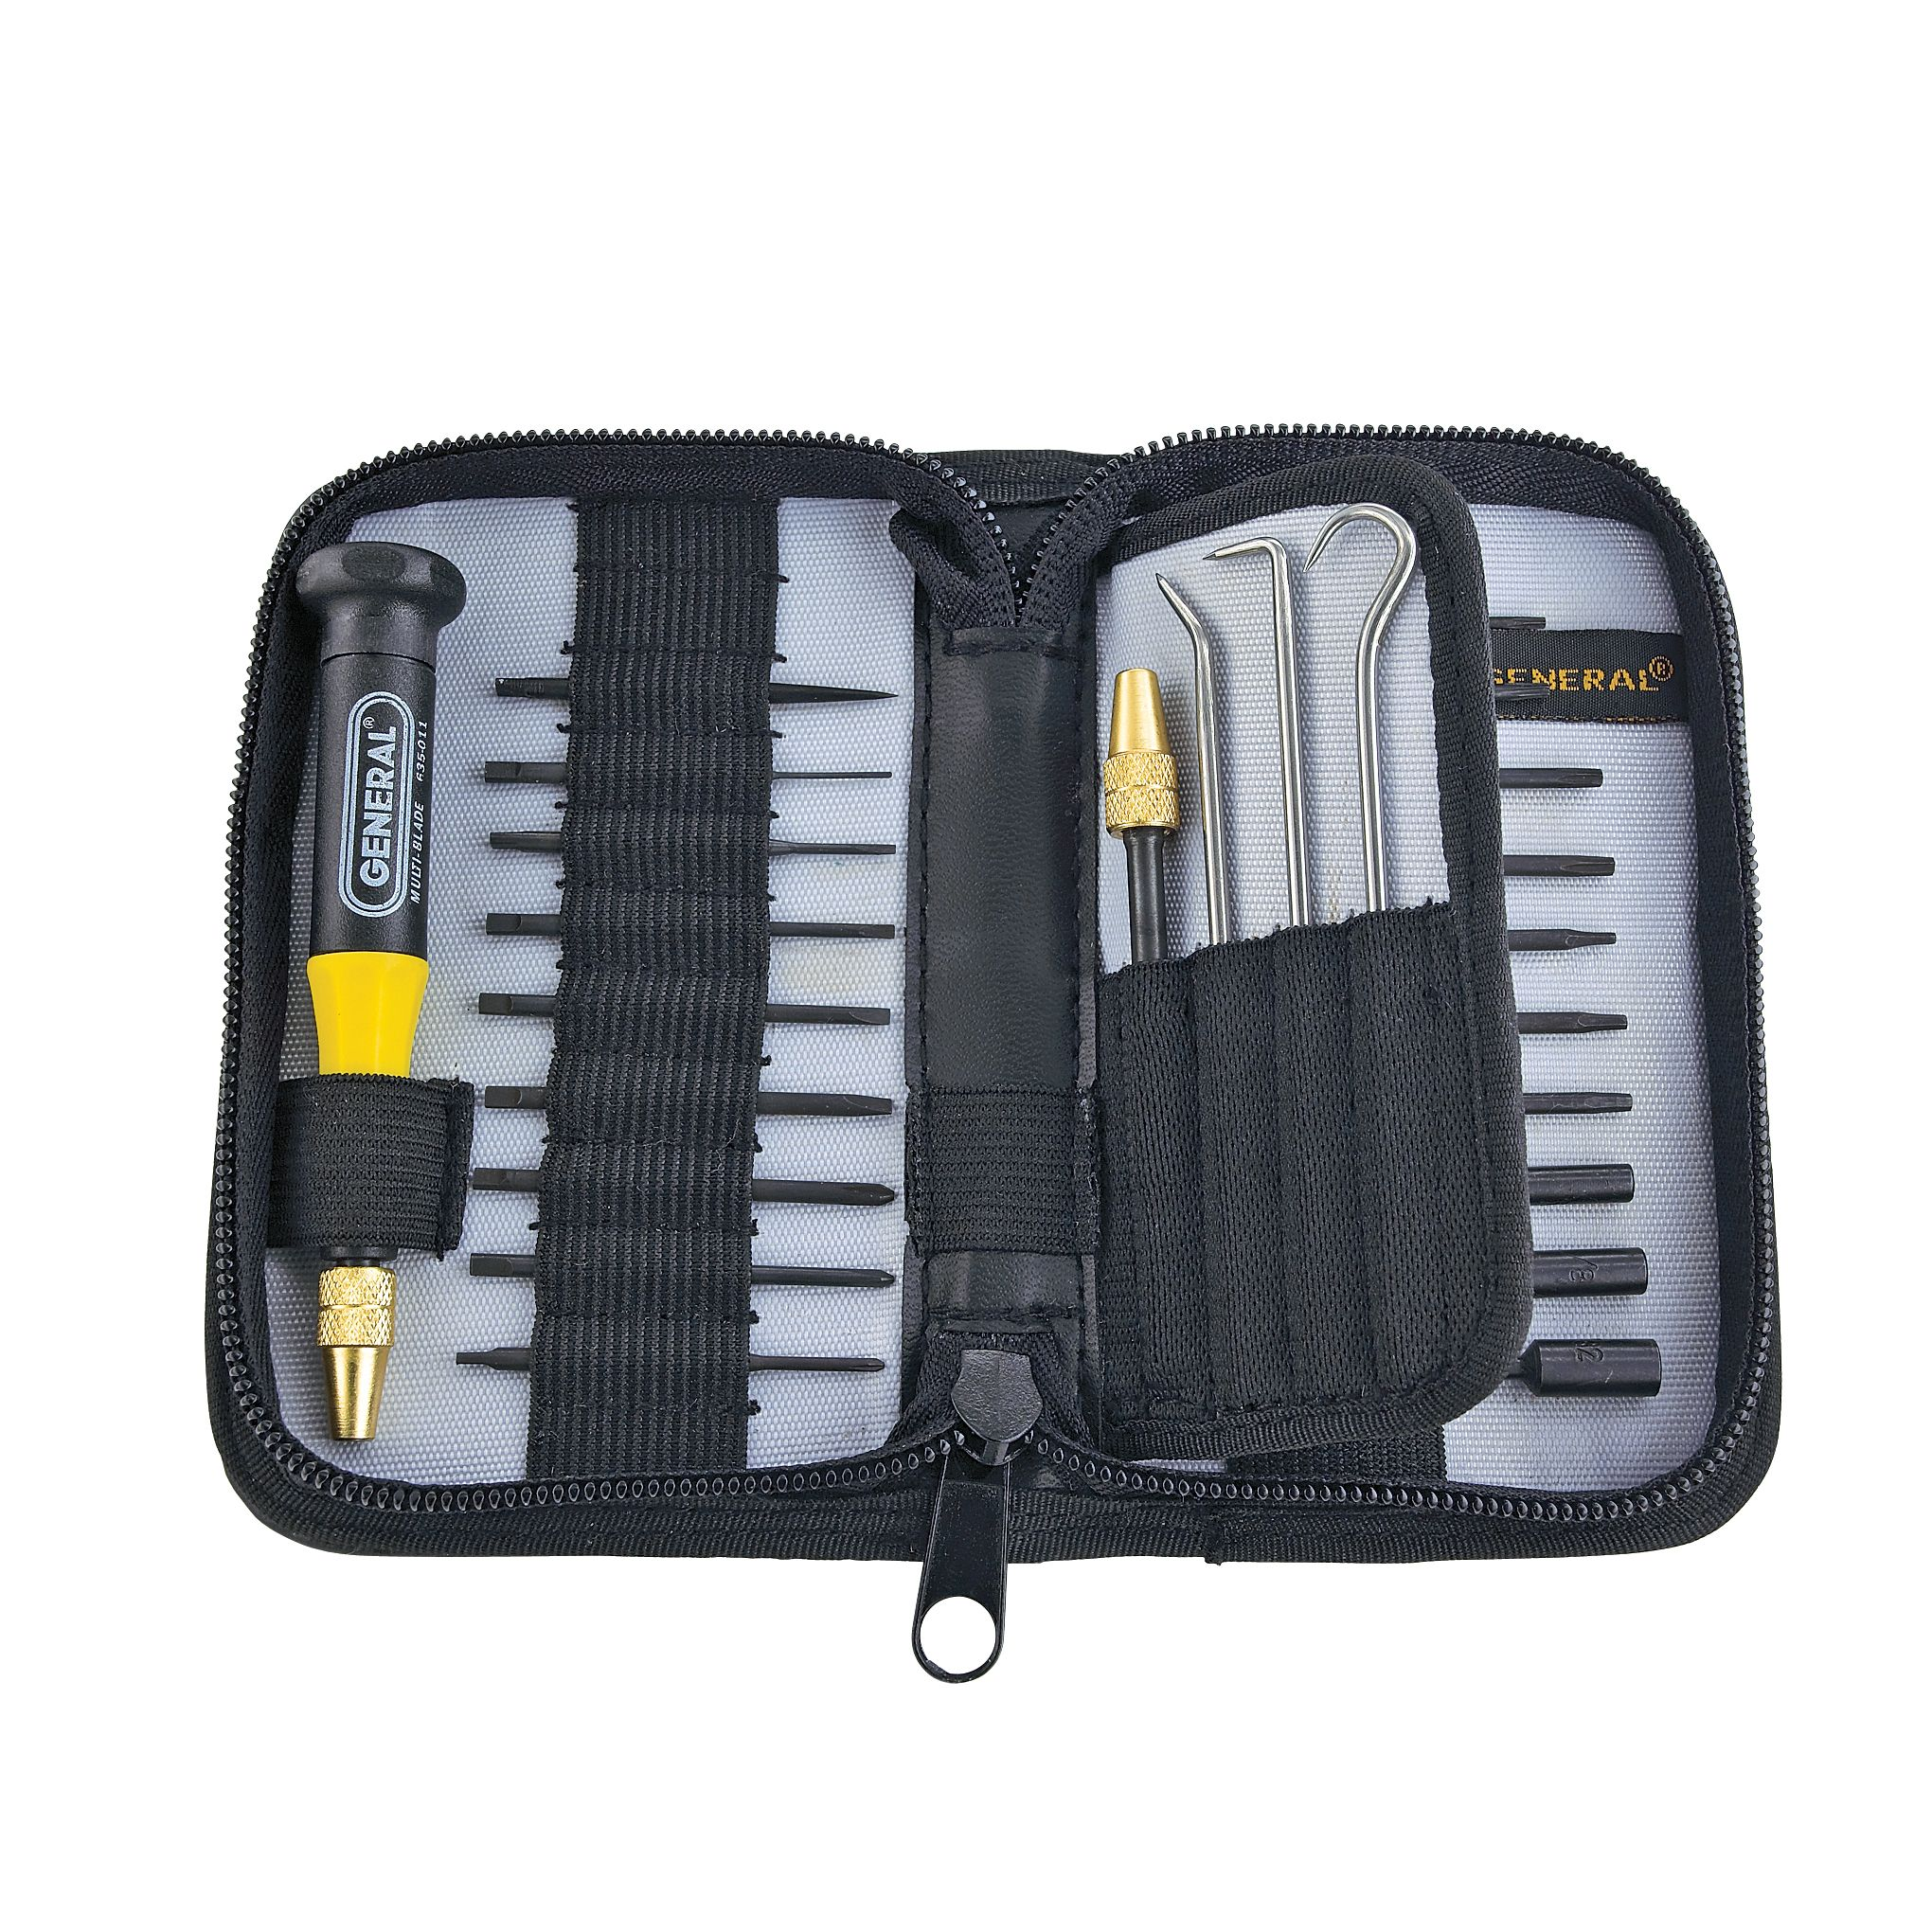 28 pc. Multi-Blade Screwdriver Set